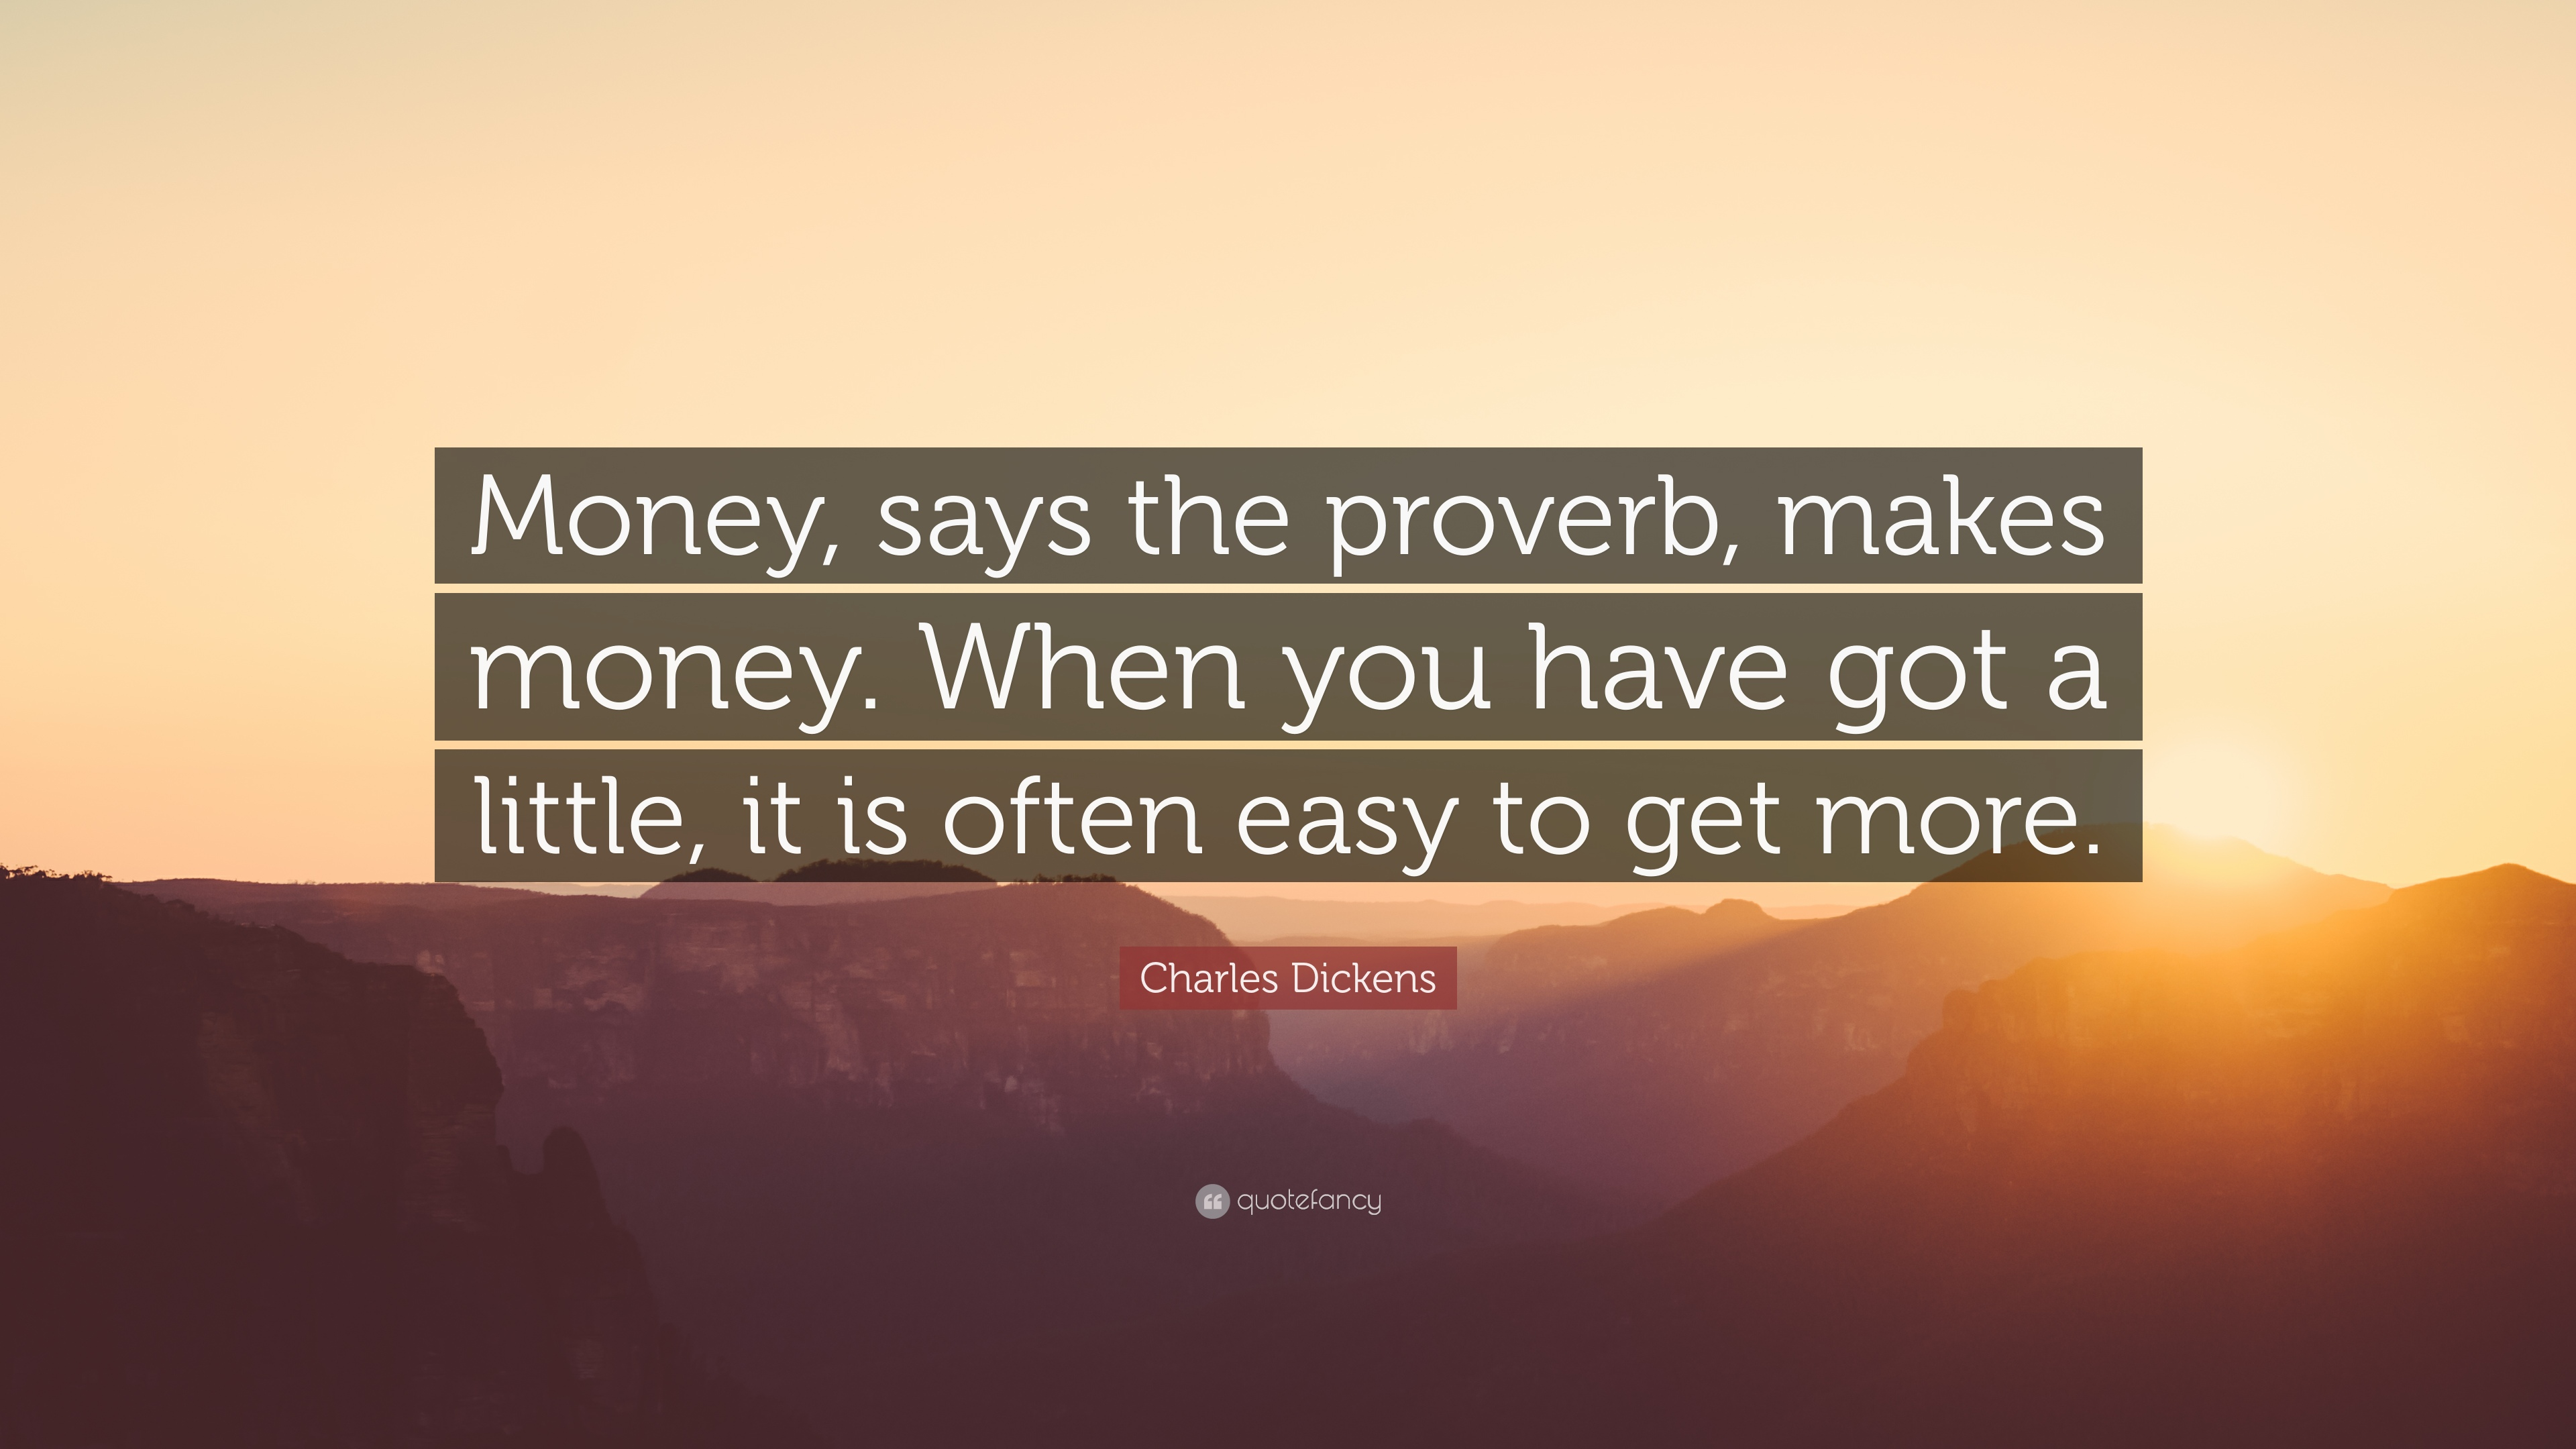 Get Money Quotes Making Money Quotes 40 Wallpapers  Quotefancy